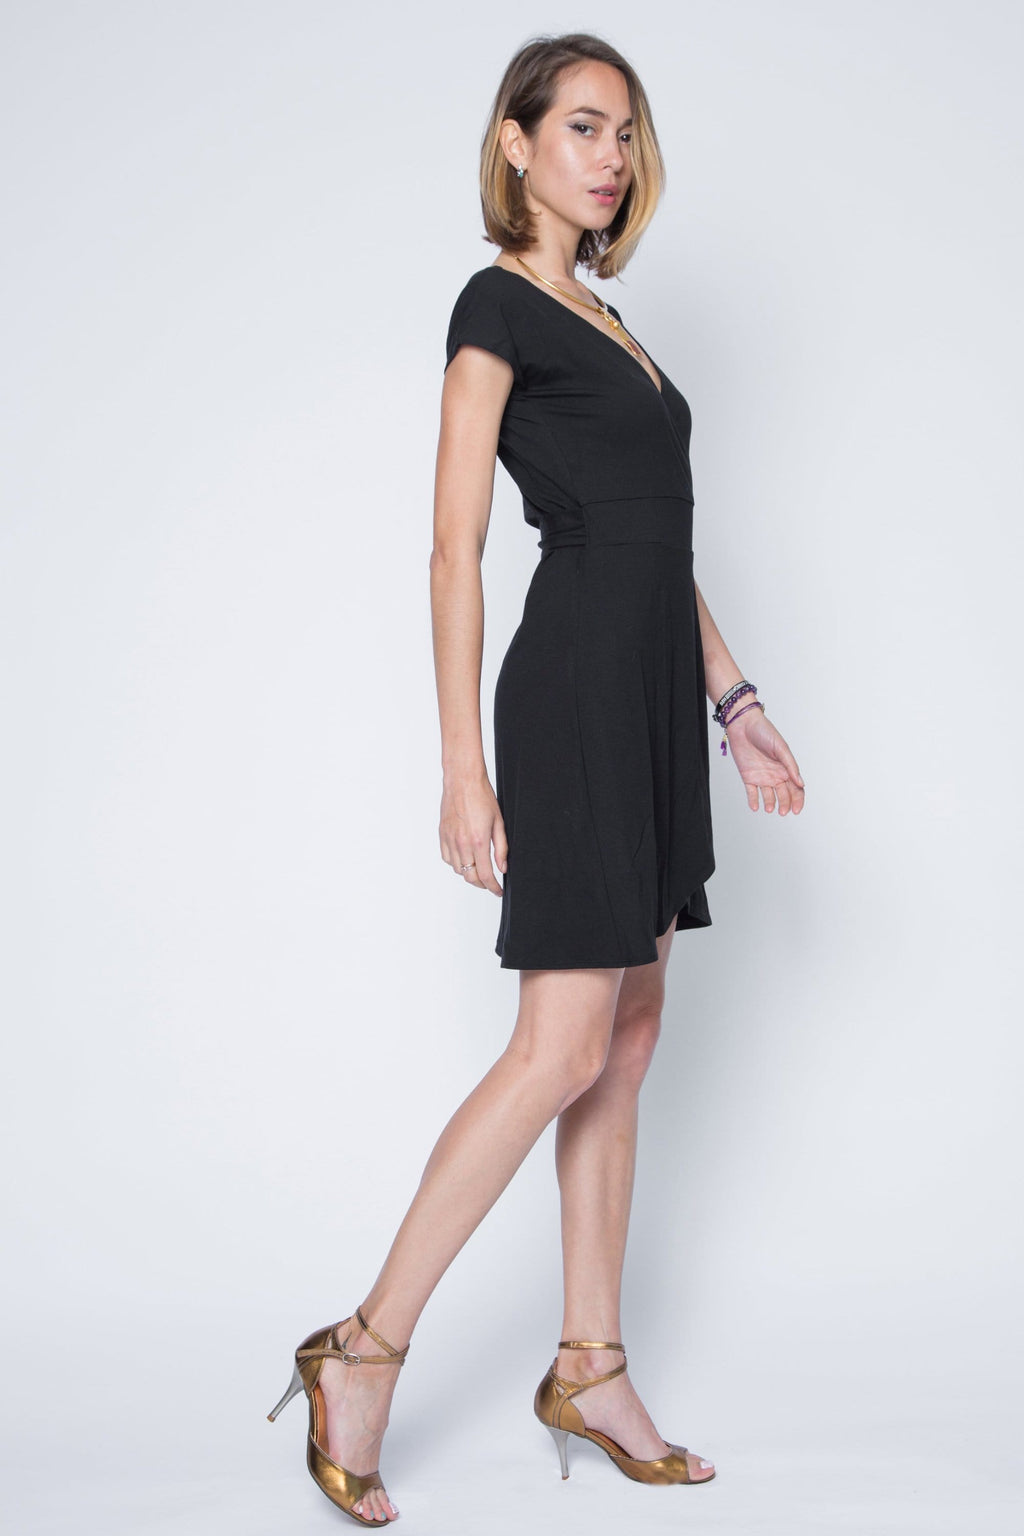 Cap sleeve black jersey wrap dress.